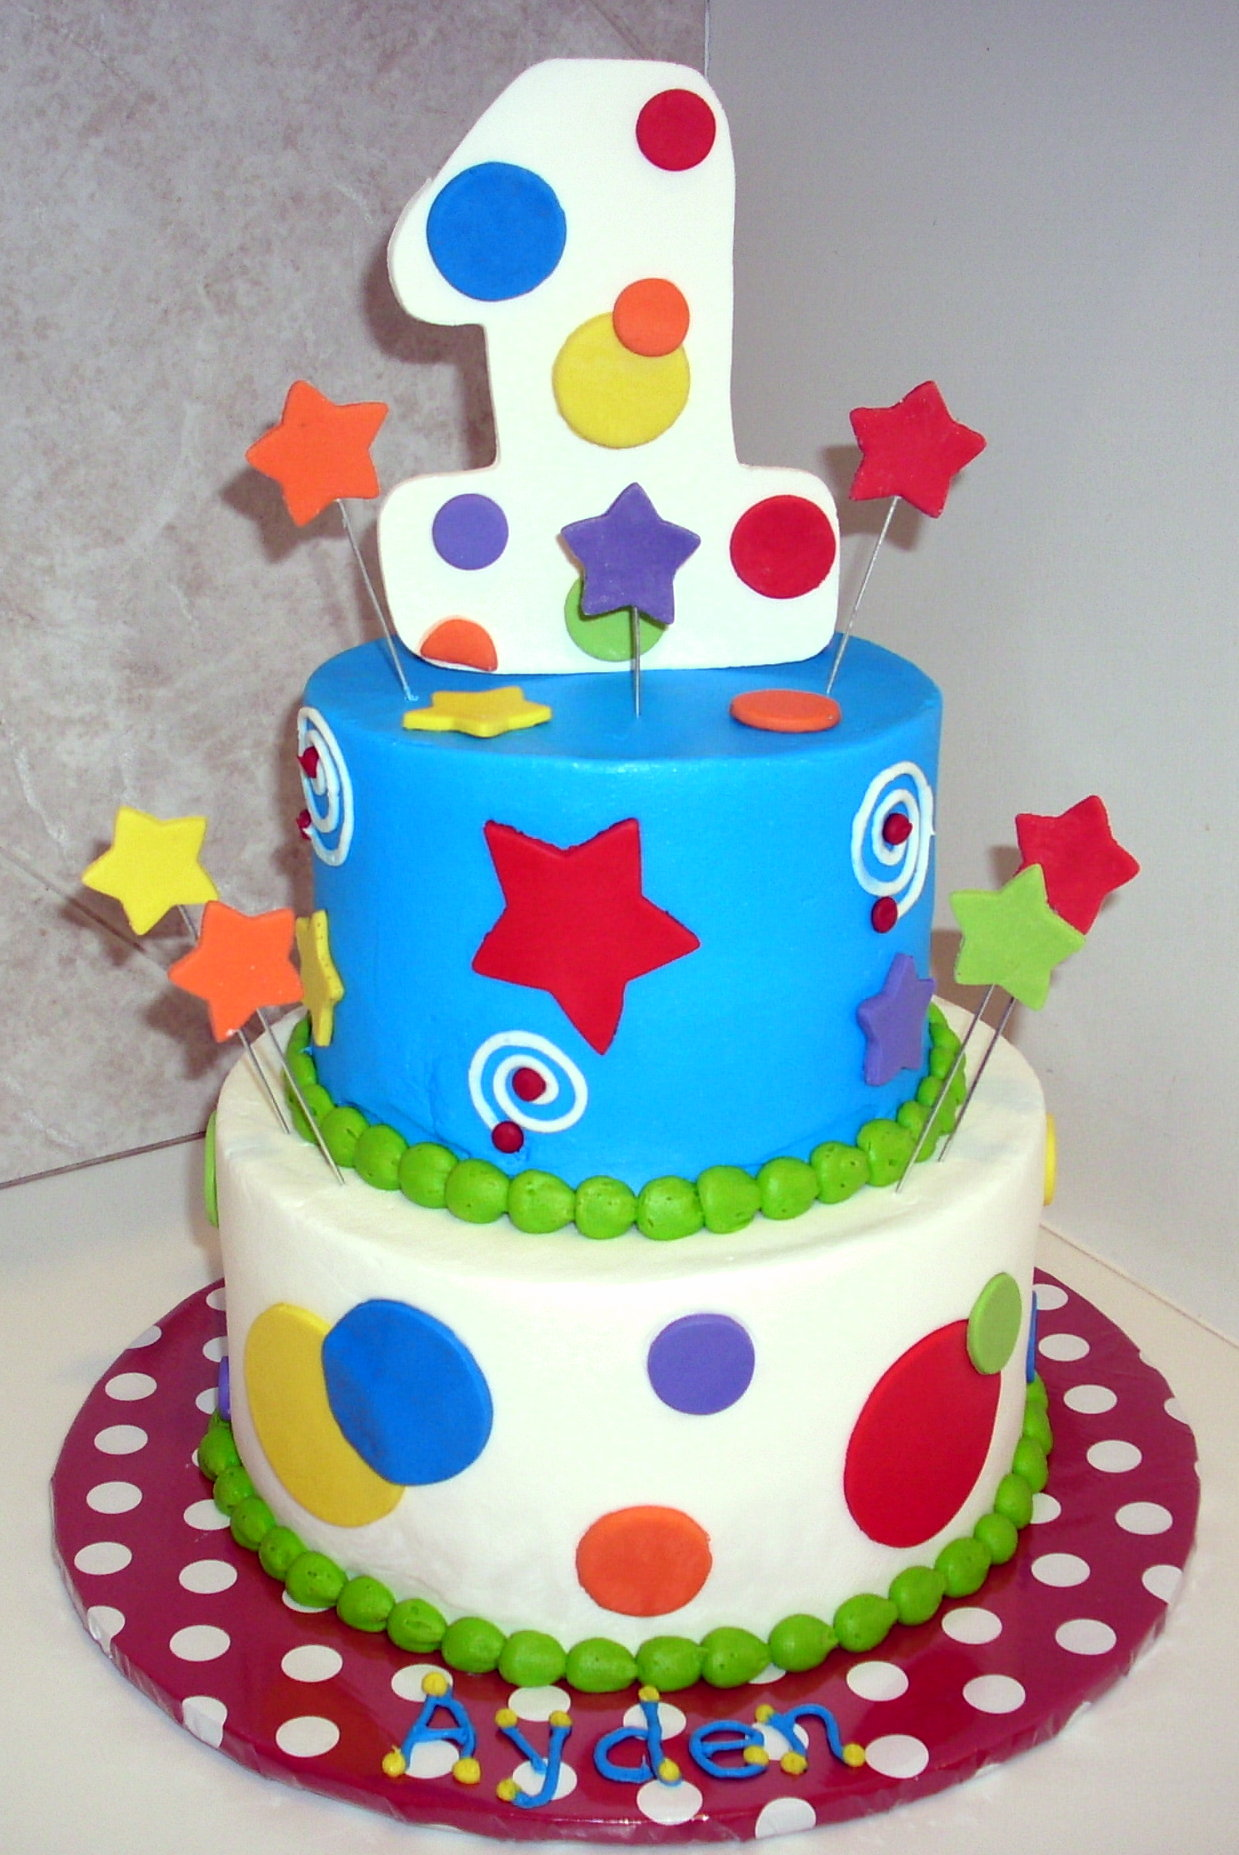 Superb Kids Birthday Cakes Images Pictures And Wallpapers Funny Birthday Cards Online Hetedamsfinfo